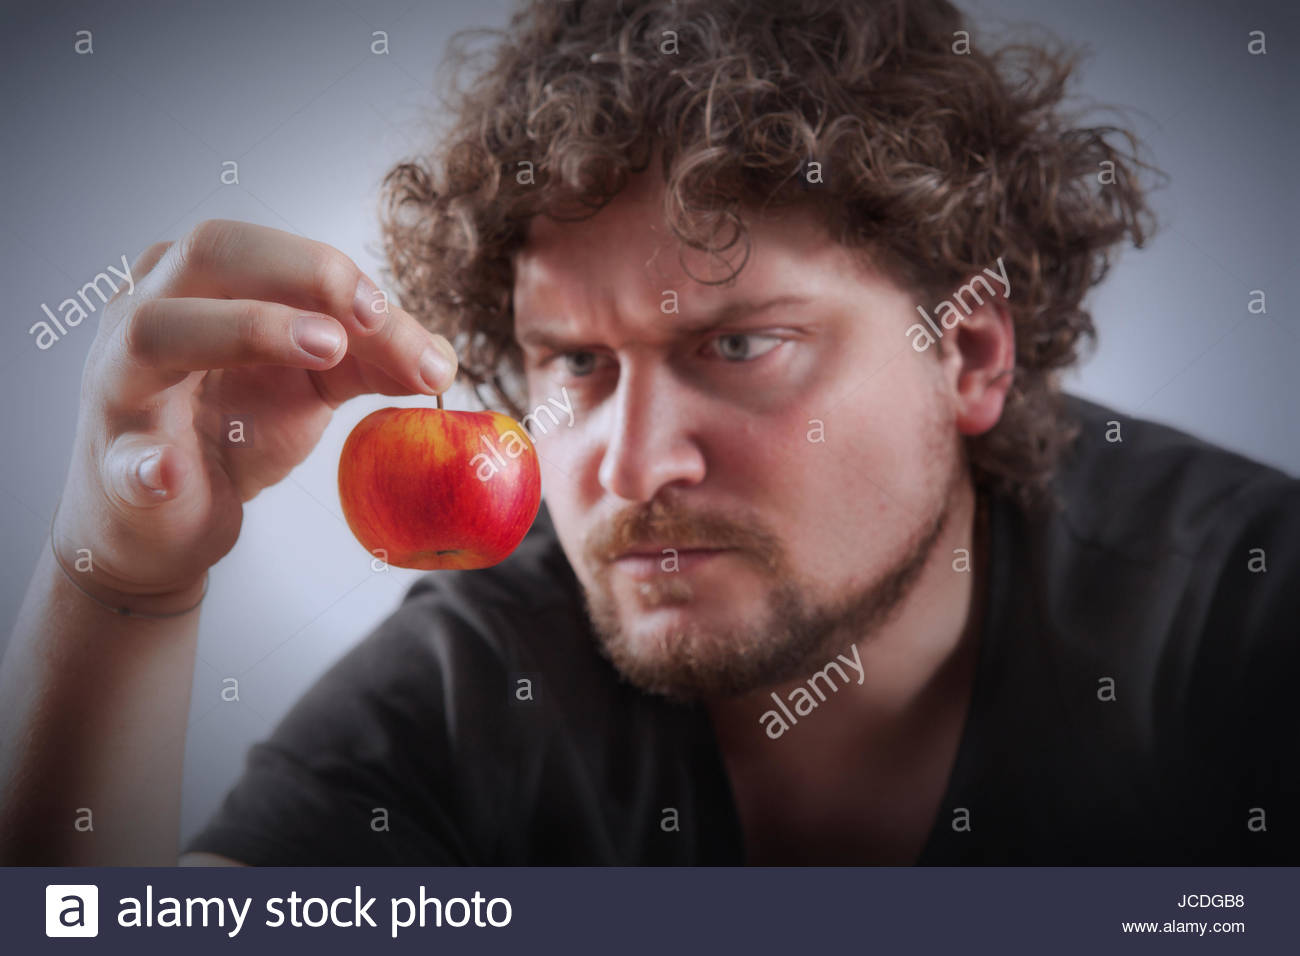 A man is looking very displeased about a little apple  Picture is     A man is looking very displeased about a little apple  Picture is toned  Apple is sharp   man in background is unsharp